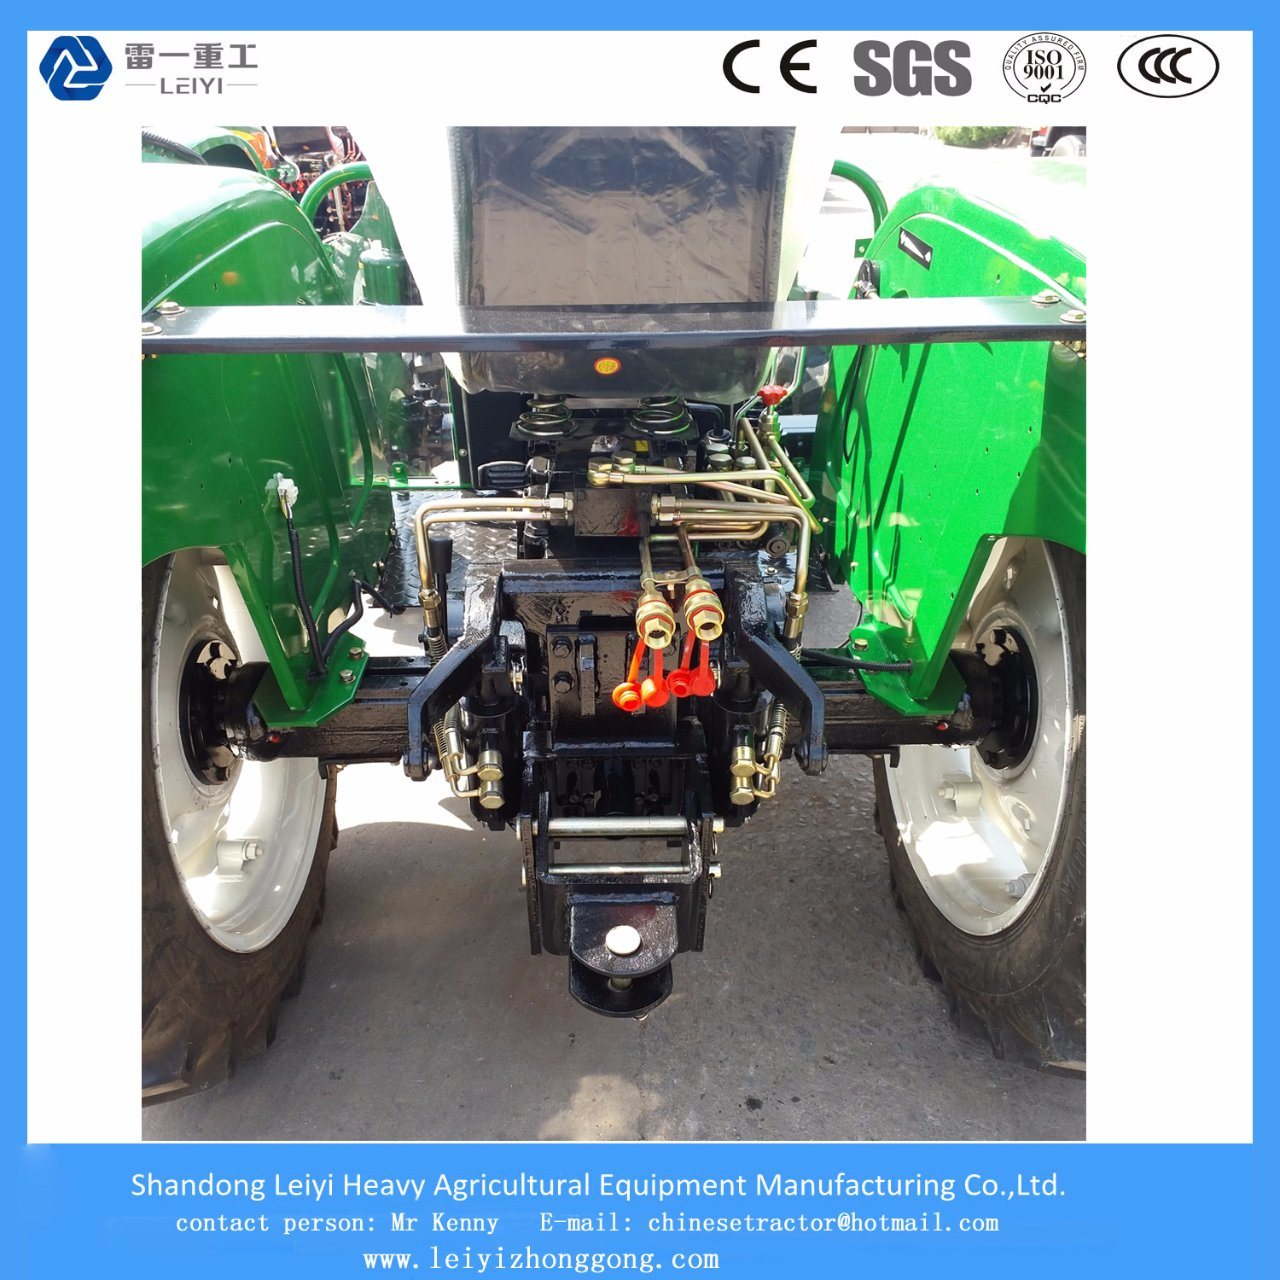 40HP 4WD Diesel Farm Tractor/ Compact Tractor/Meadow Tractor/Agricultural Tractor